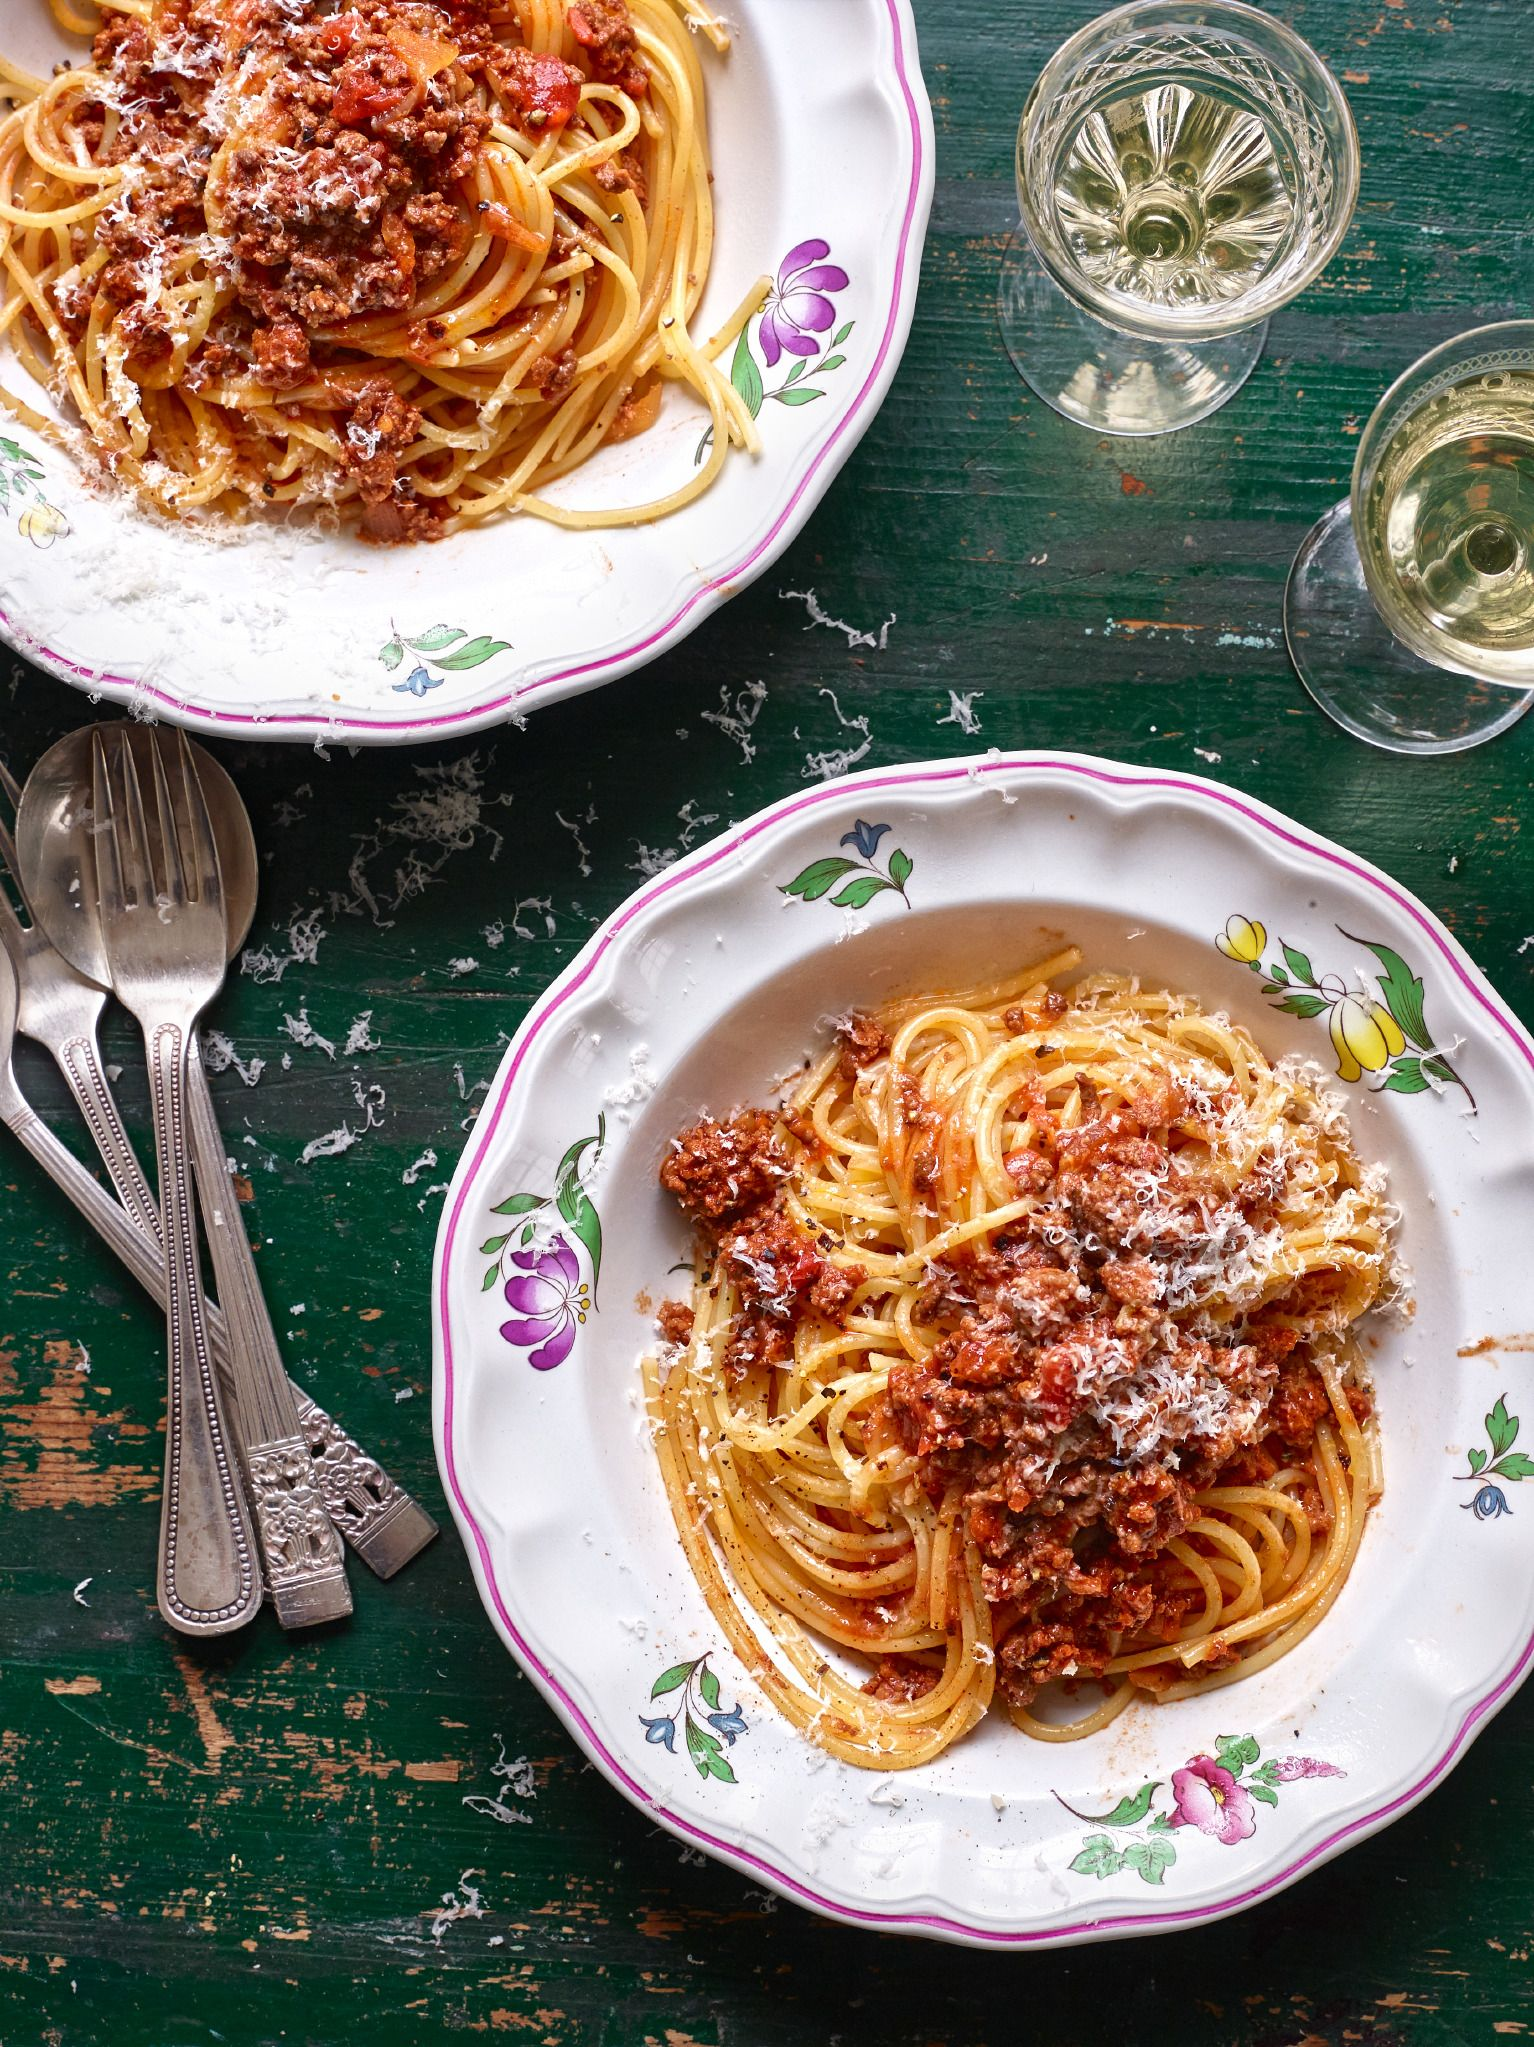 SHALLY S BOLOGNESE SAUCE PERFECT FOR FAMILY GATHERING RECIPES